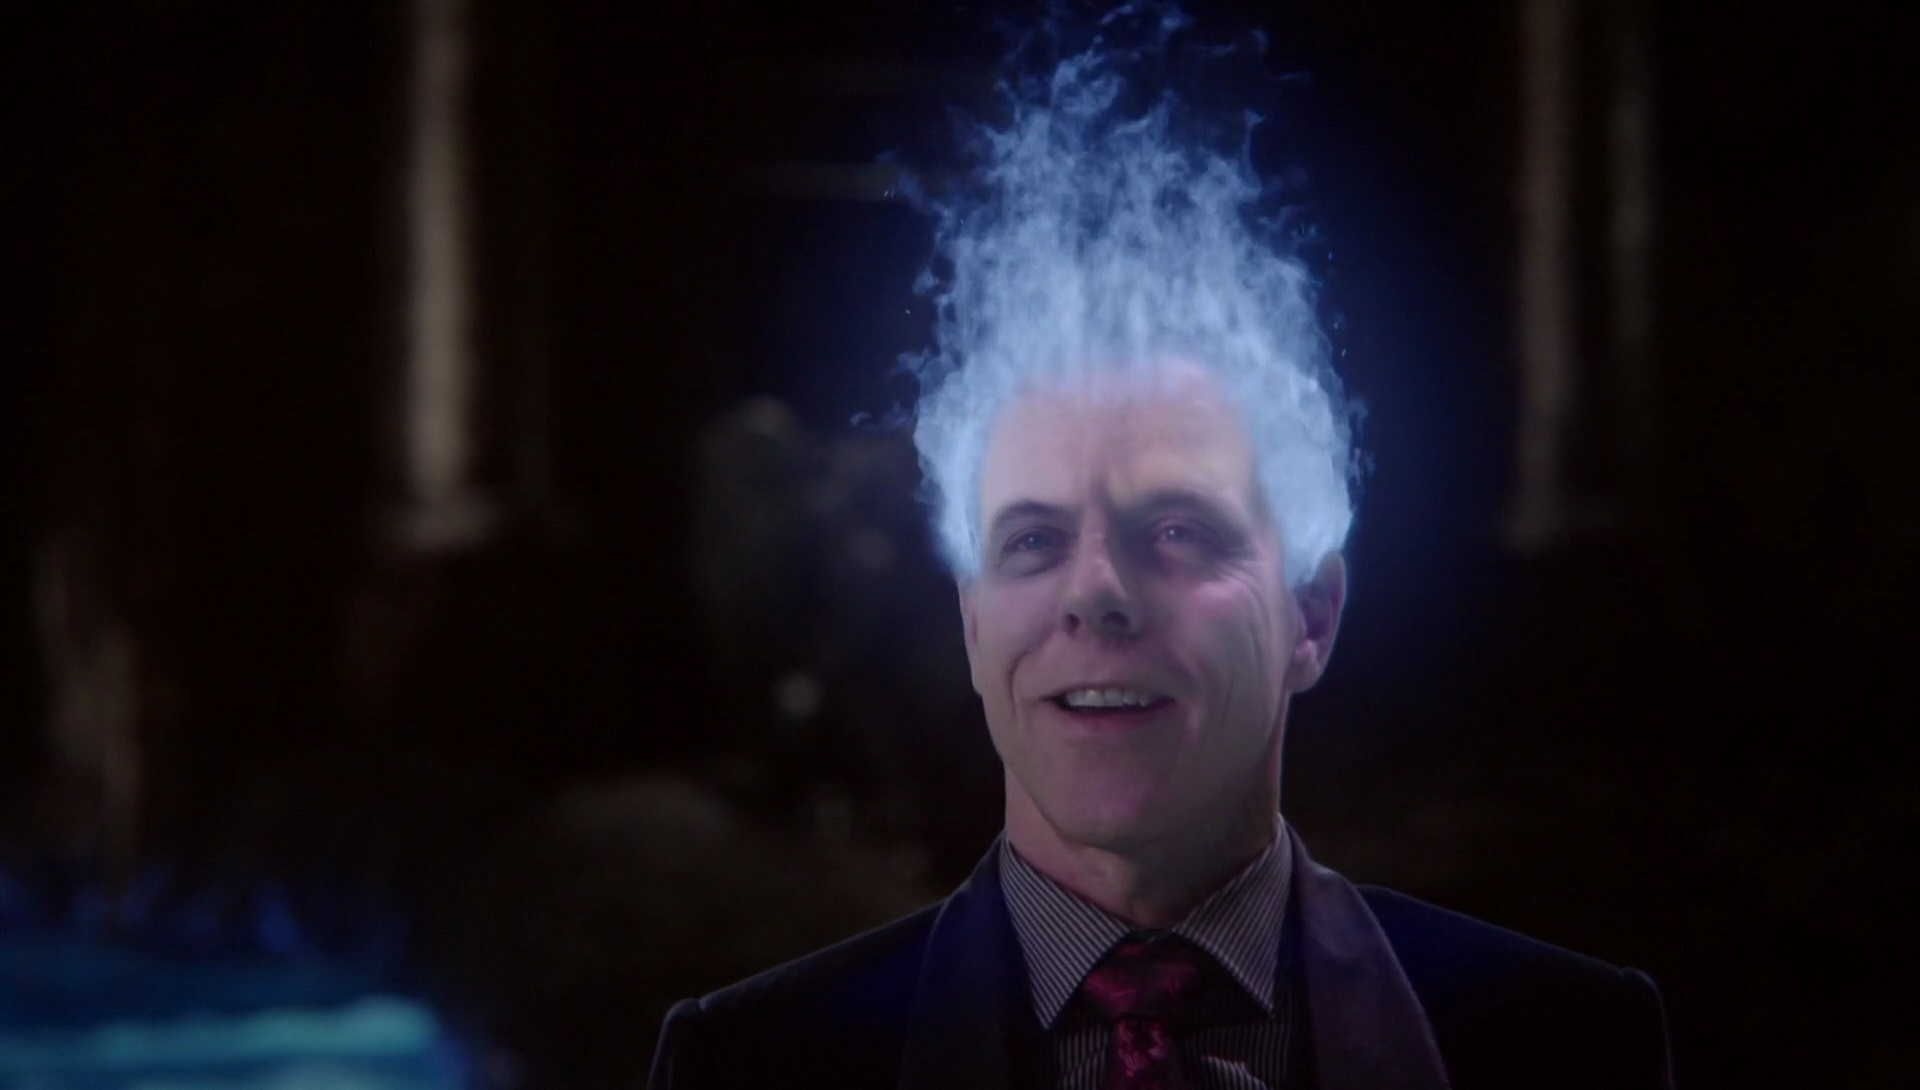 Hades in the TV show Once Upon a Time.